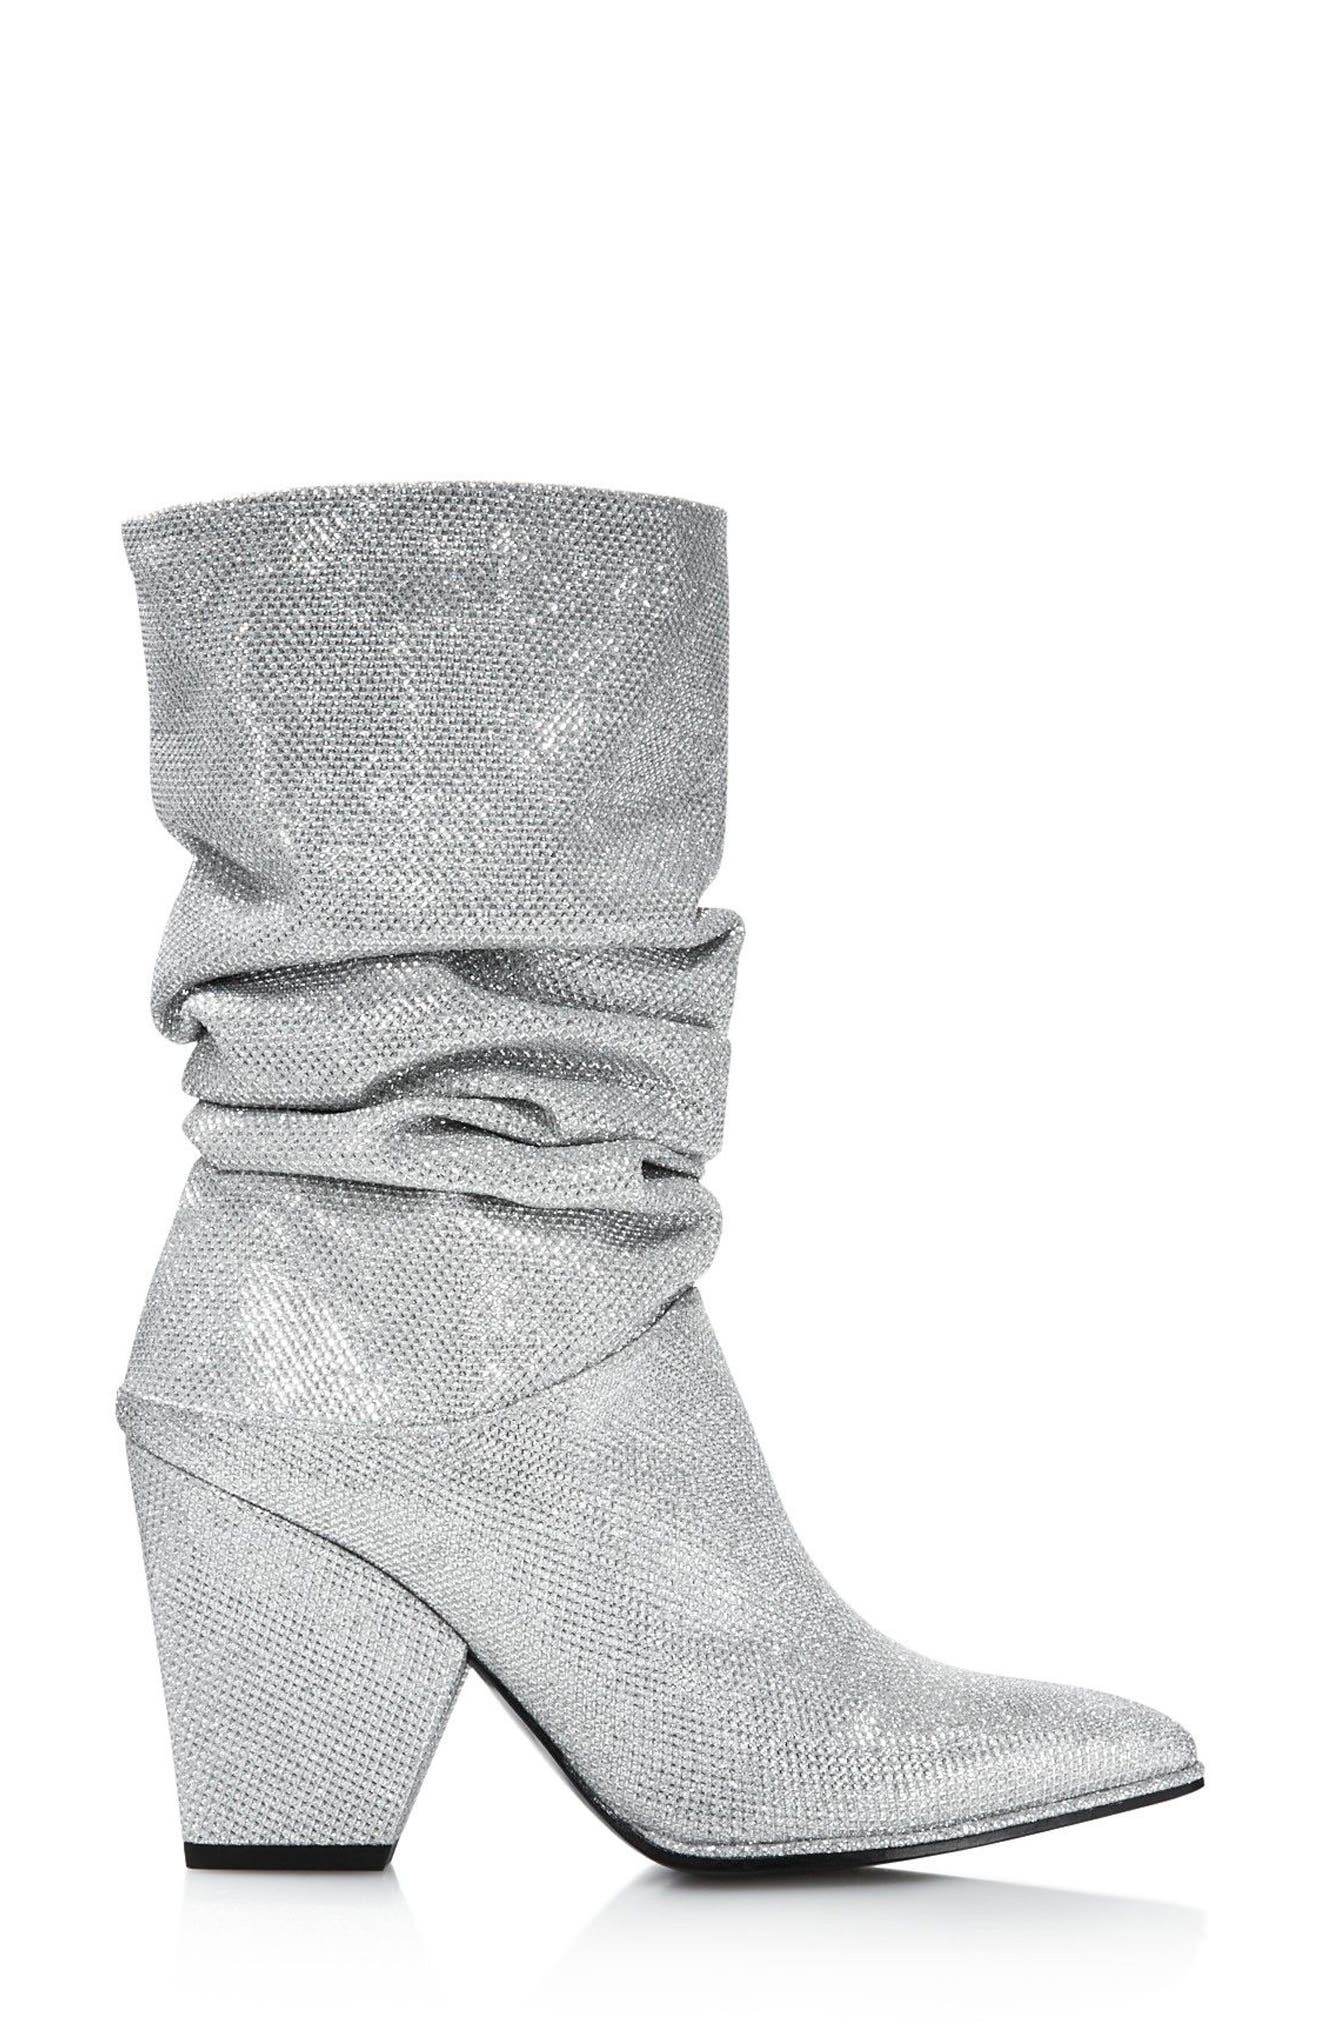 Crush Slouchy Bootie,                             Alternate thumbnail 2, color,